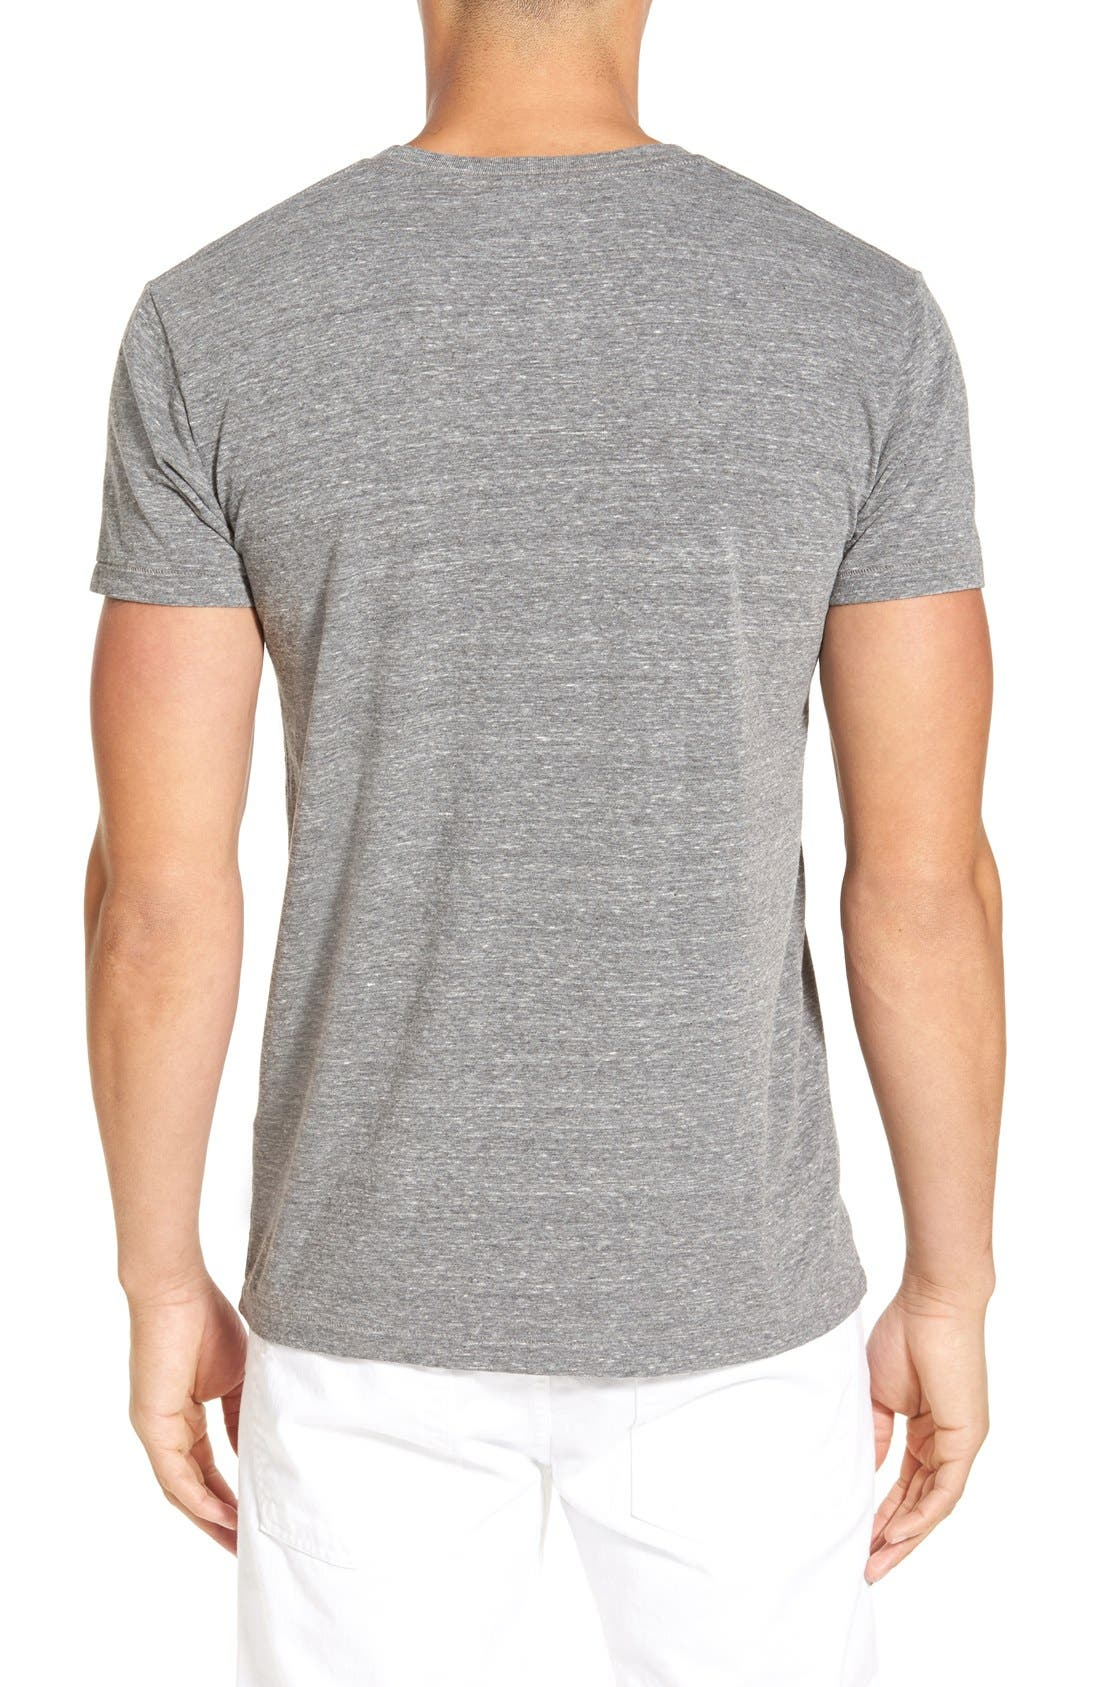 'Waves' Graphic T-Shirt,                             Alternate thumbnail 2, color,                             Heather Grey